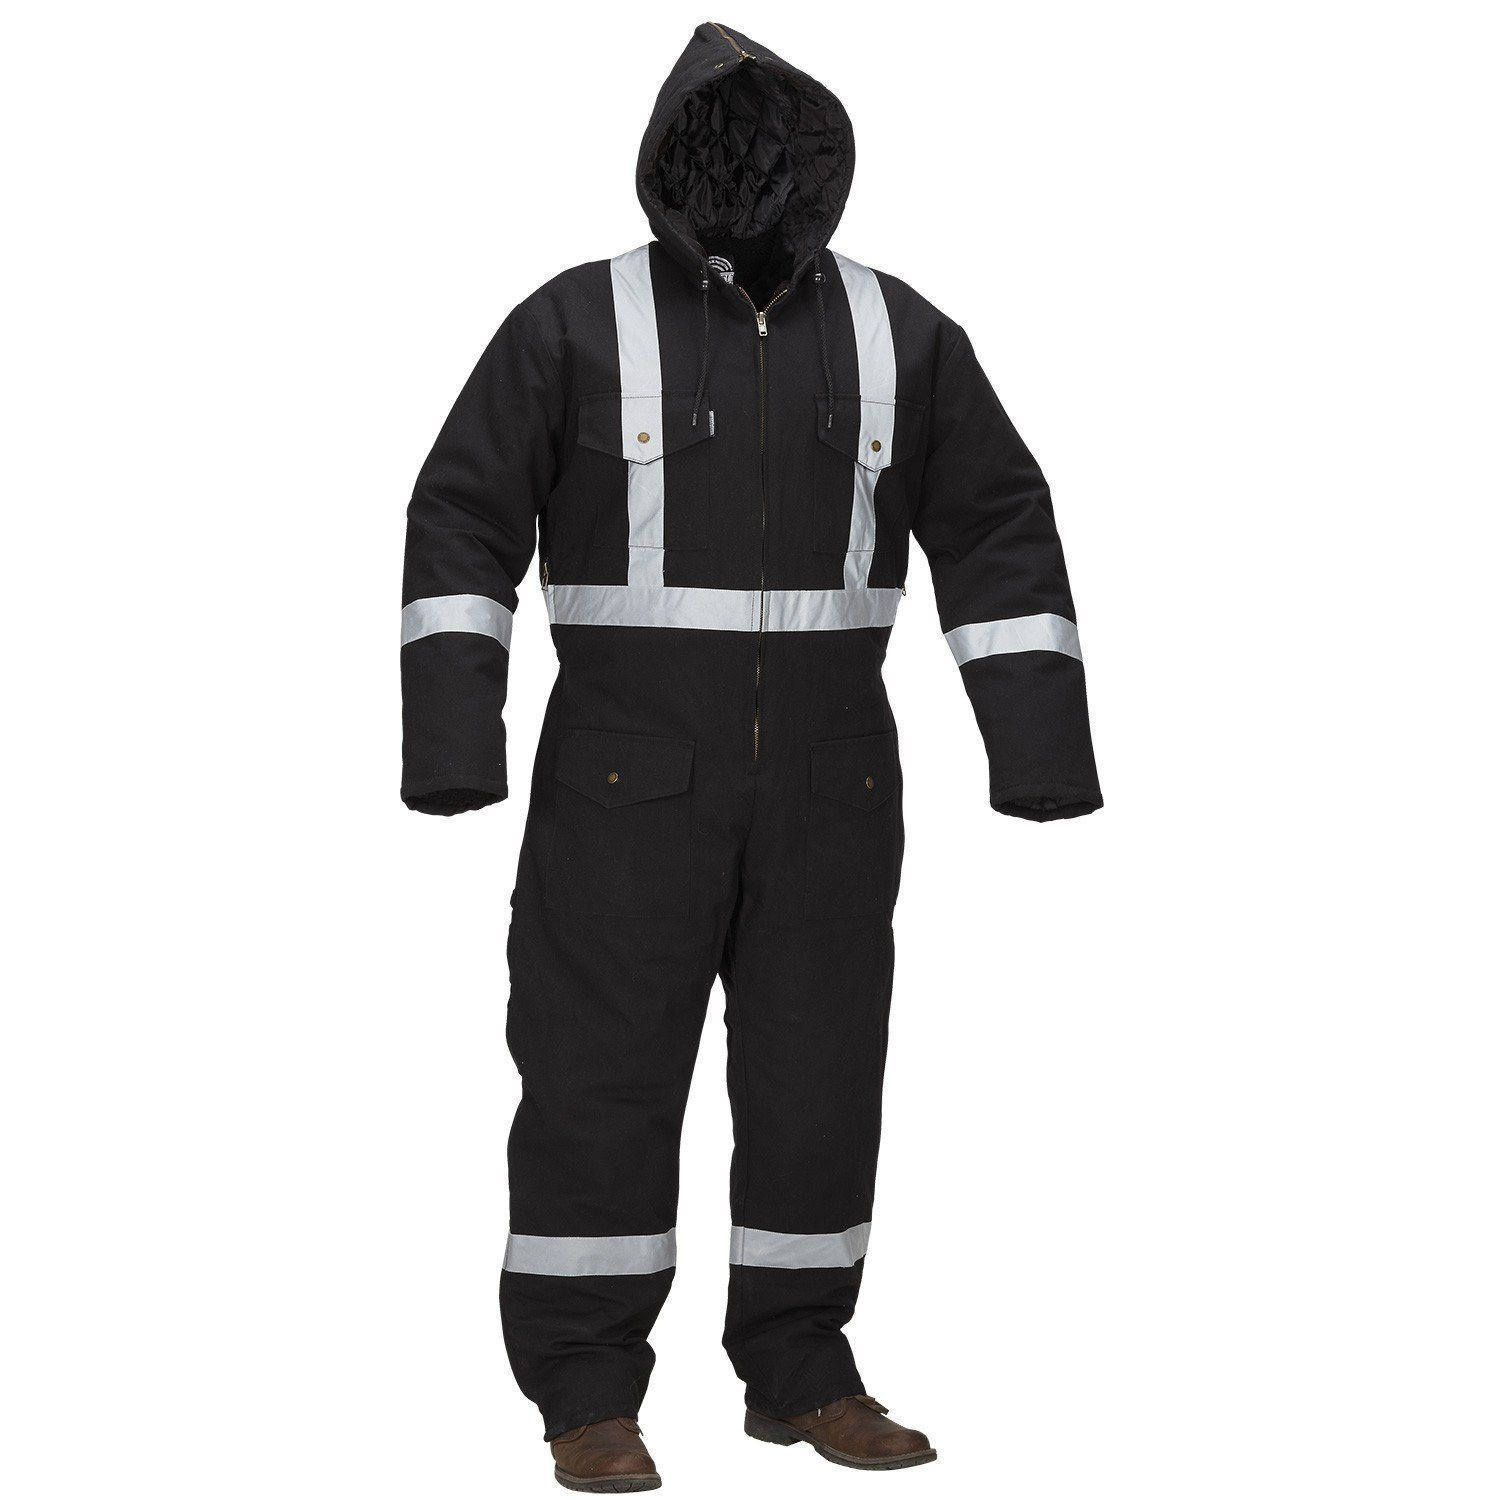 Forcefield Hi-Vis Lined Coverall 024-GA34S